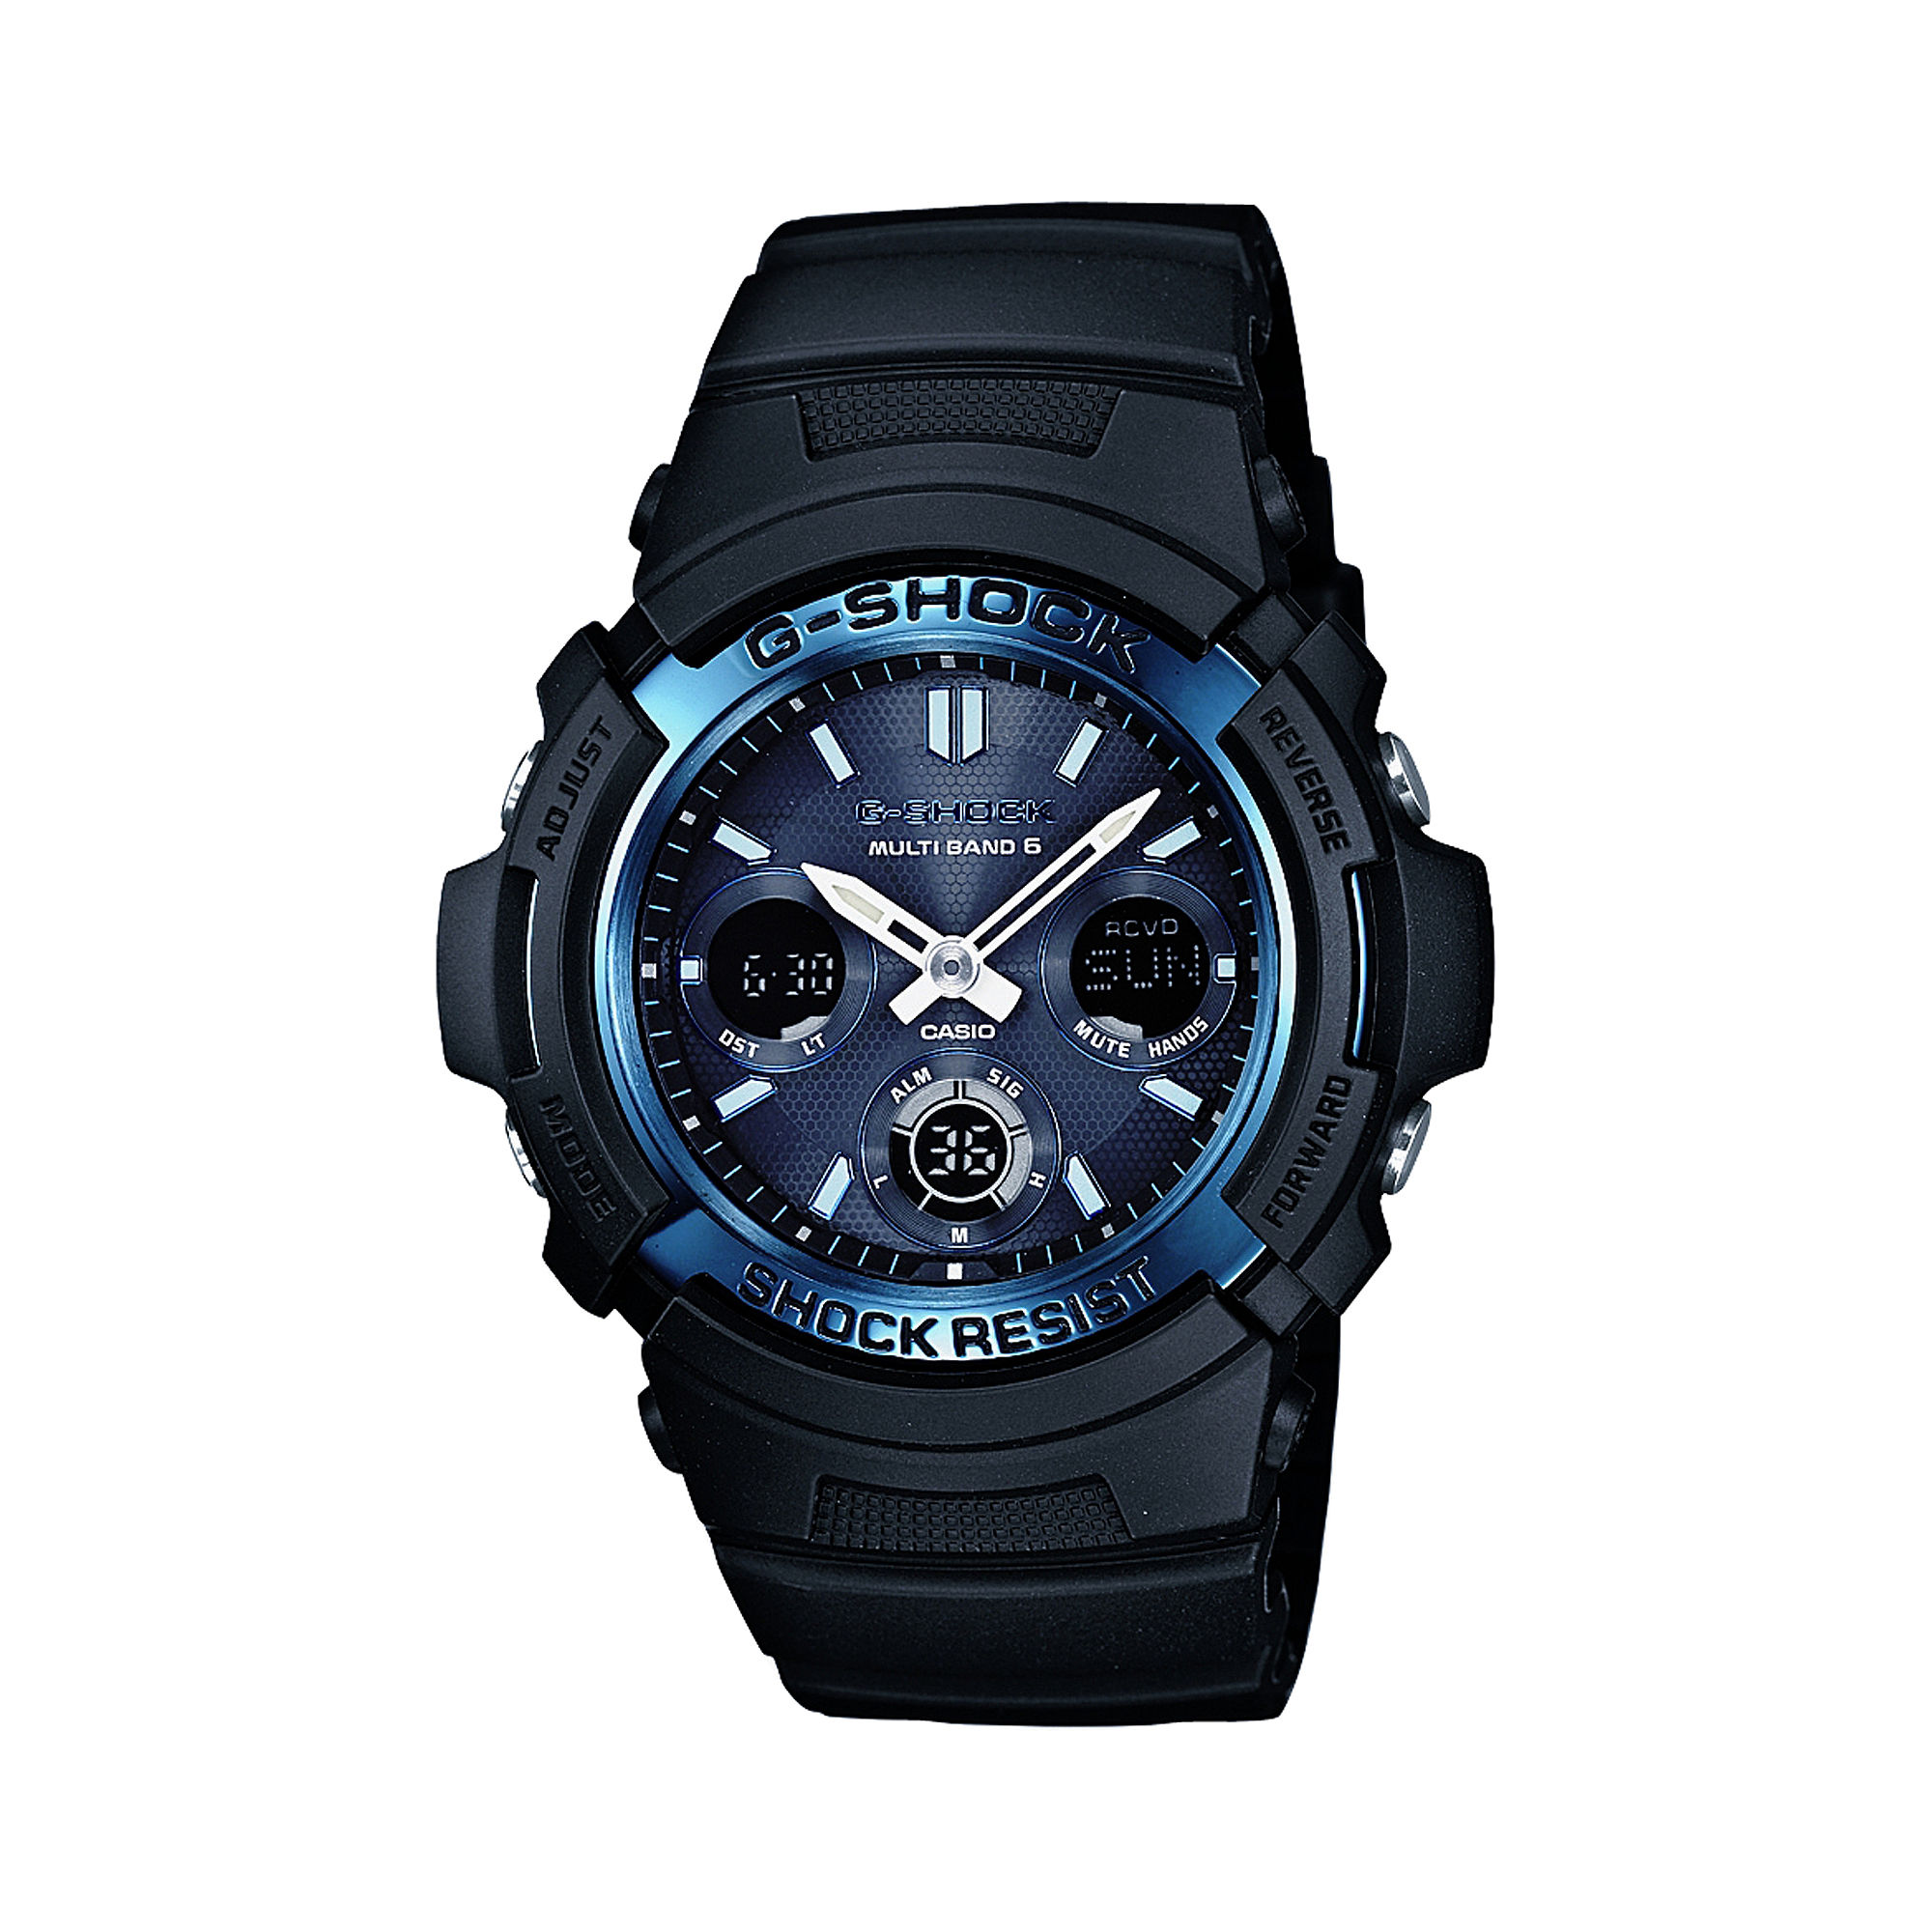 Casio G-Shock Mens Multi-Band 6-Atomic Blue Watch AWGM100A-1A